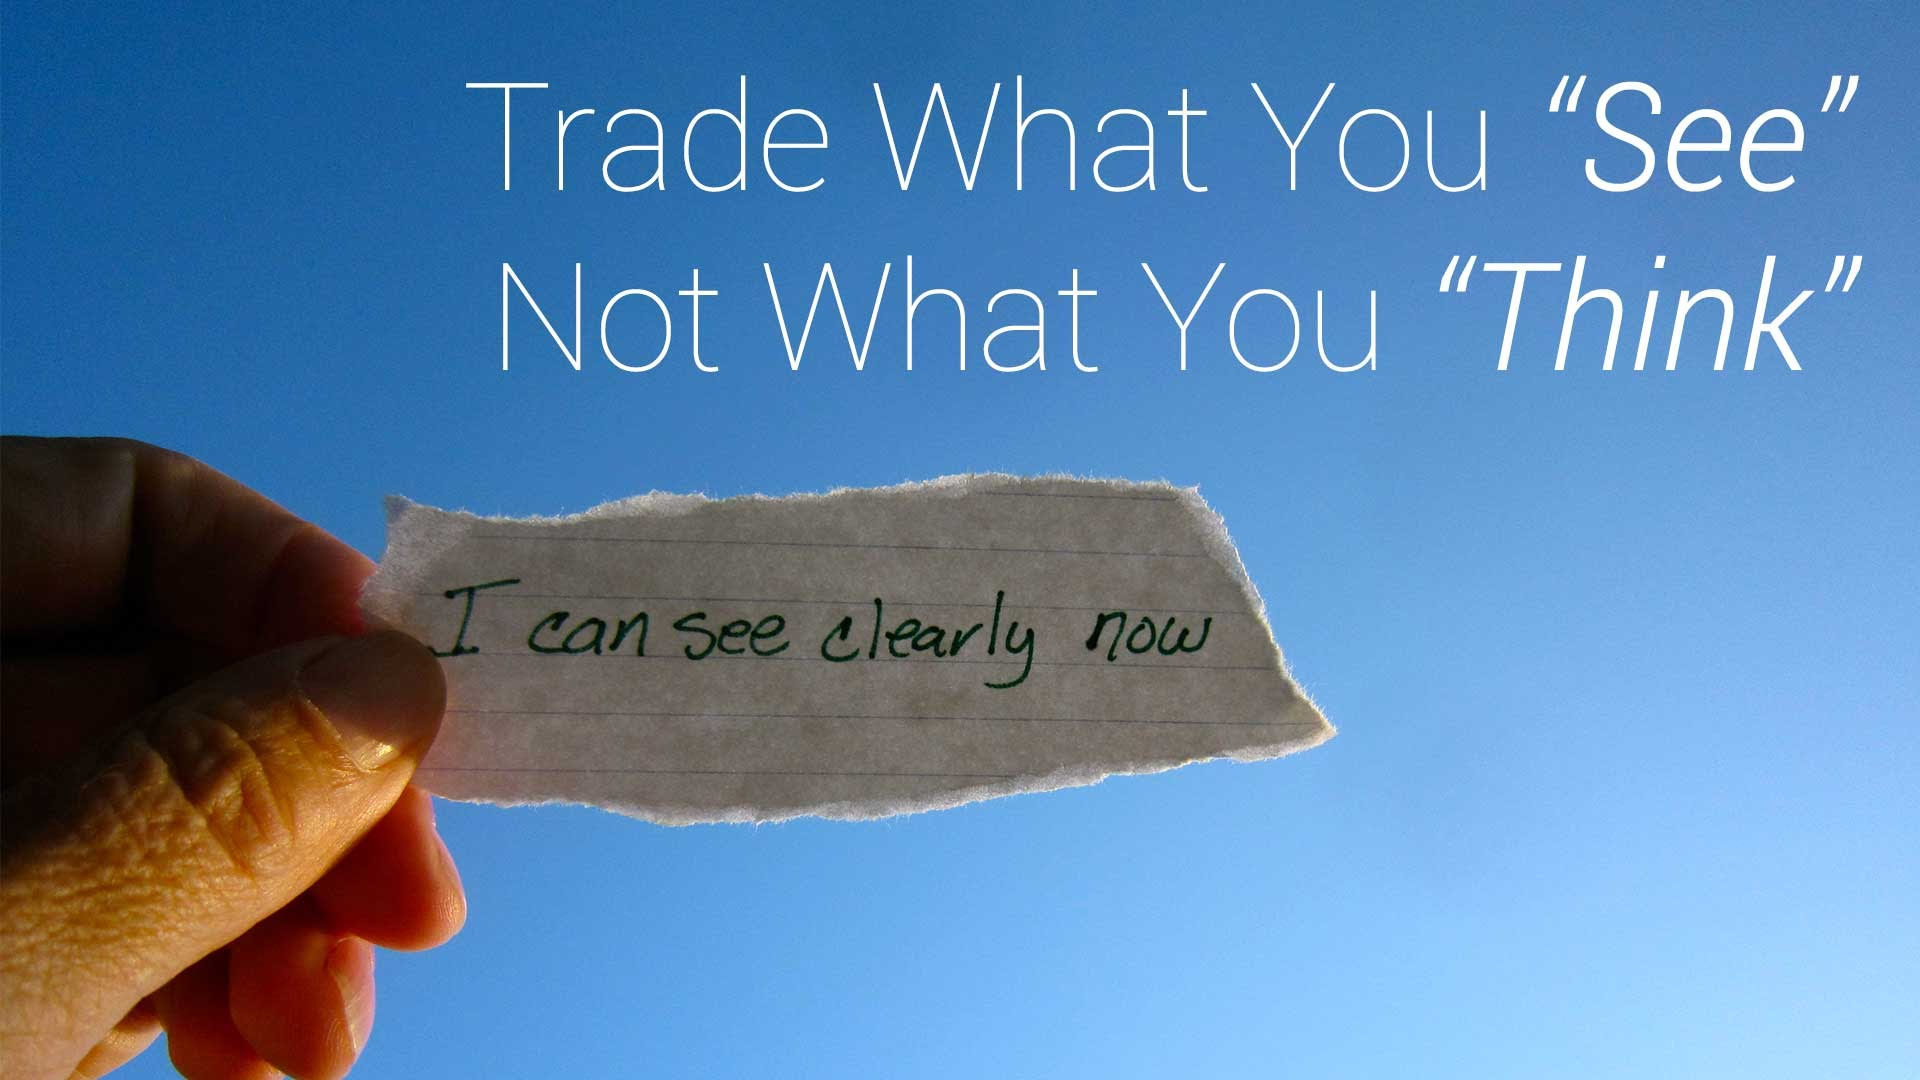 Trend Trading Rules Trade What You See And Not What You Think